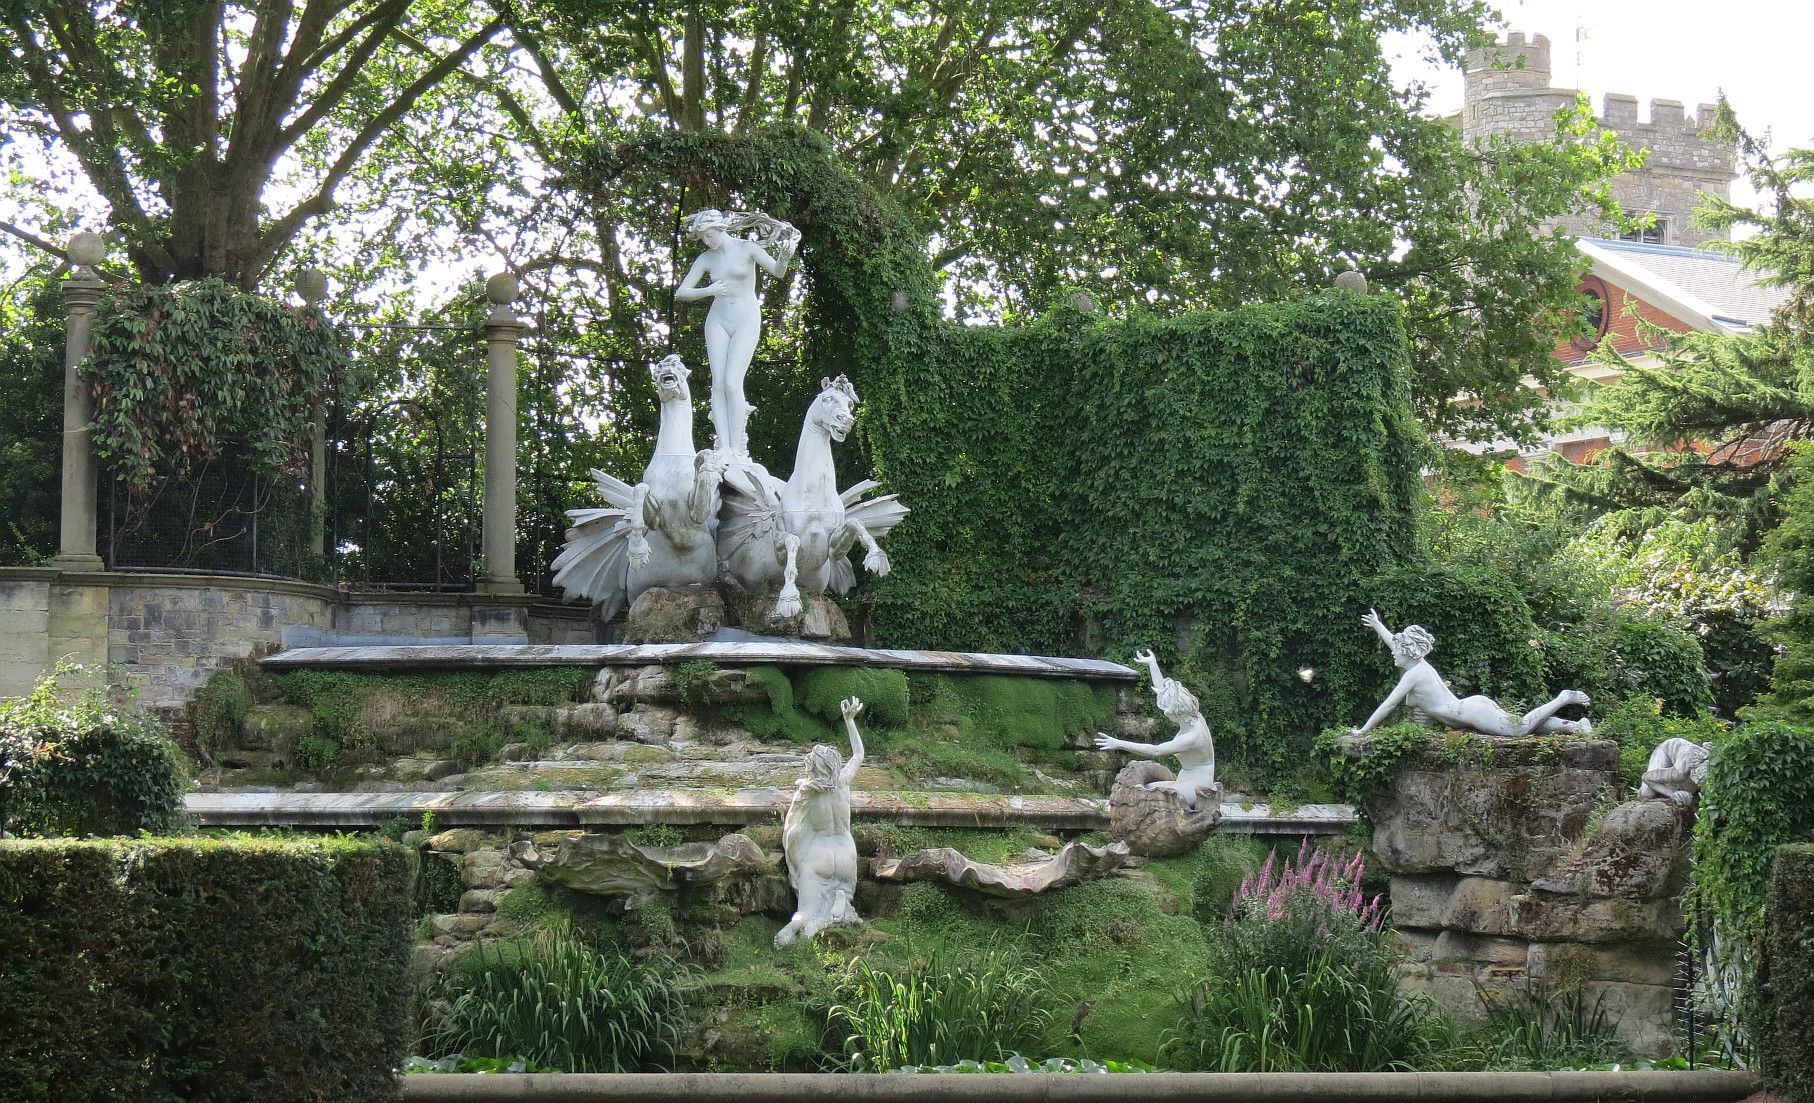 York House Garden Sculpture, Twickenham   Carved In The Fin De Siècle Style  From White